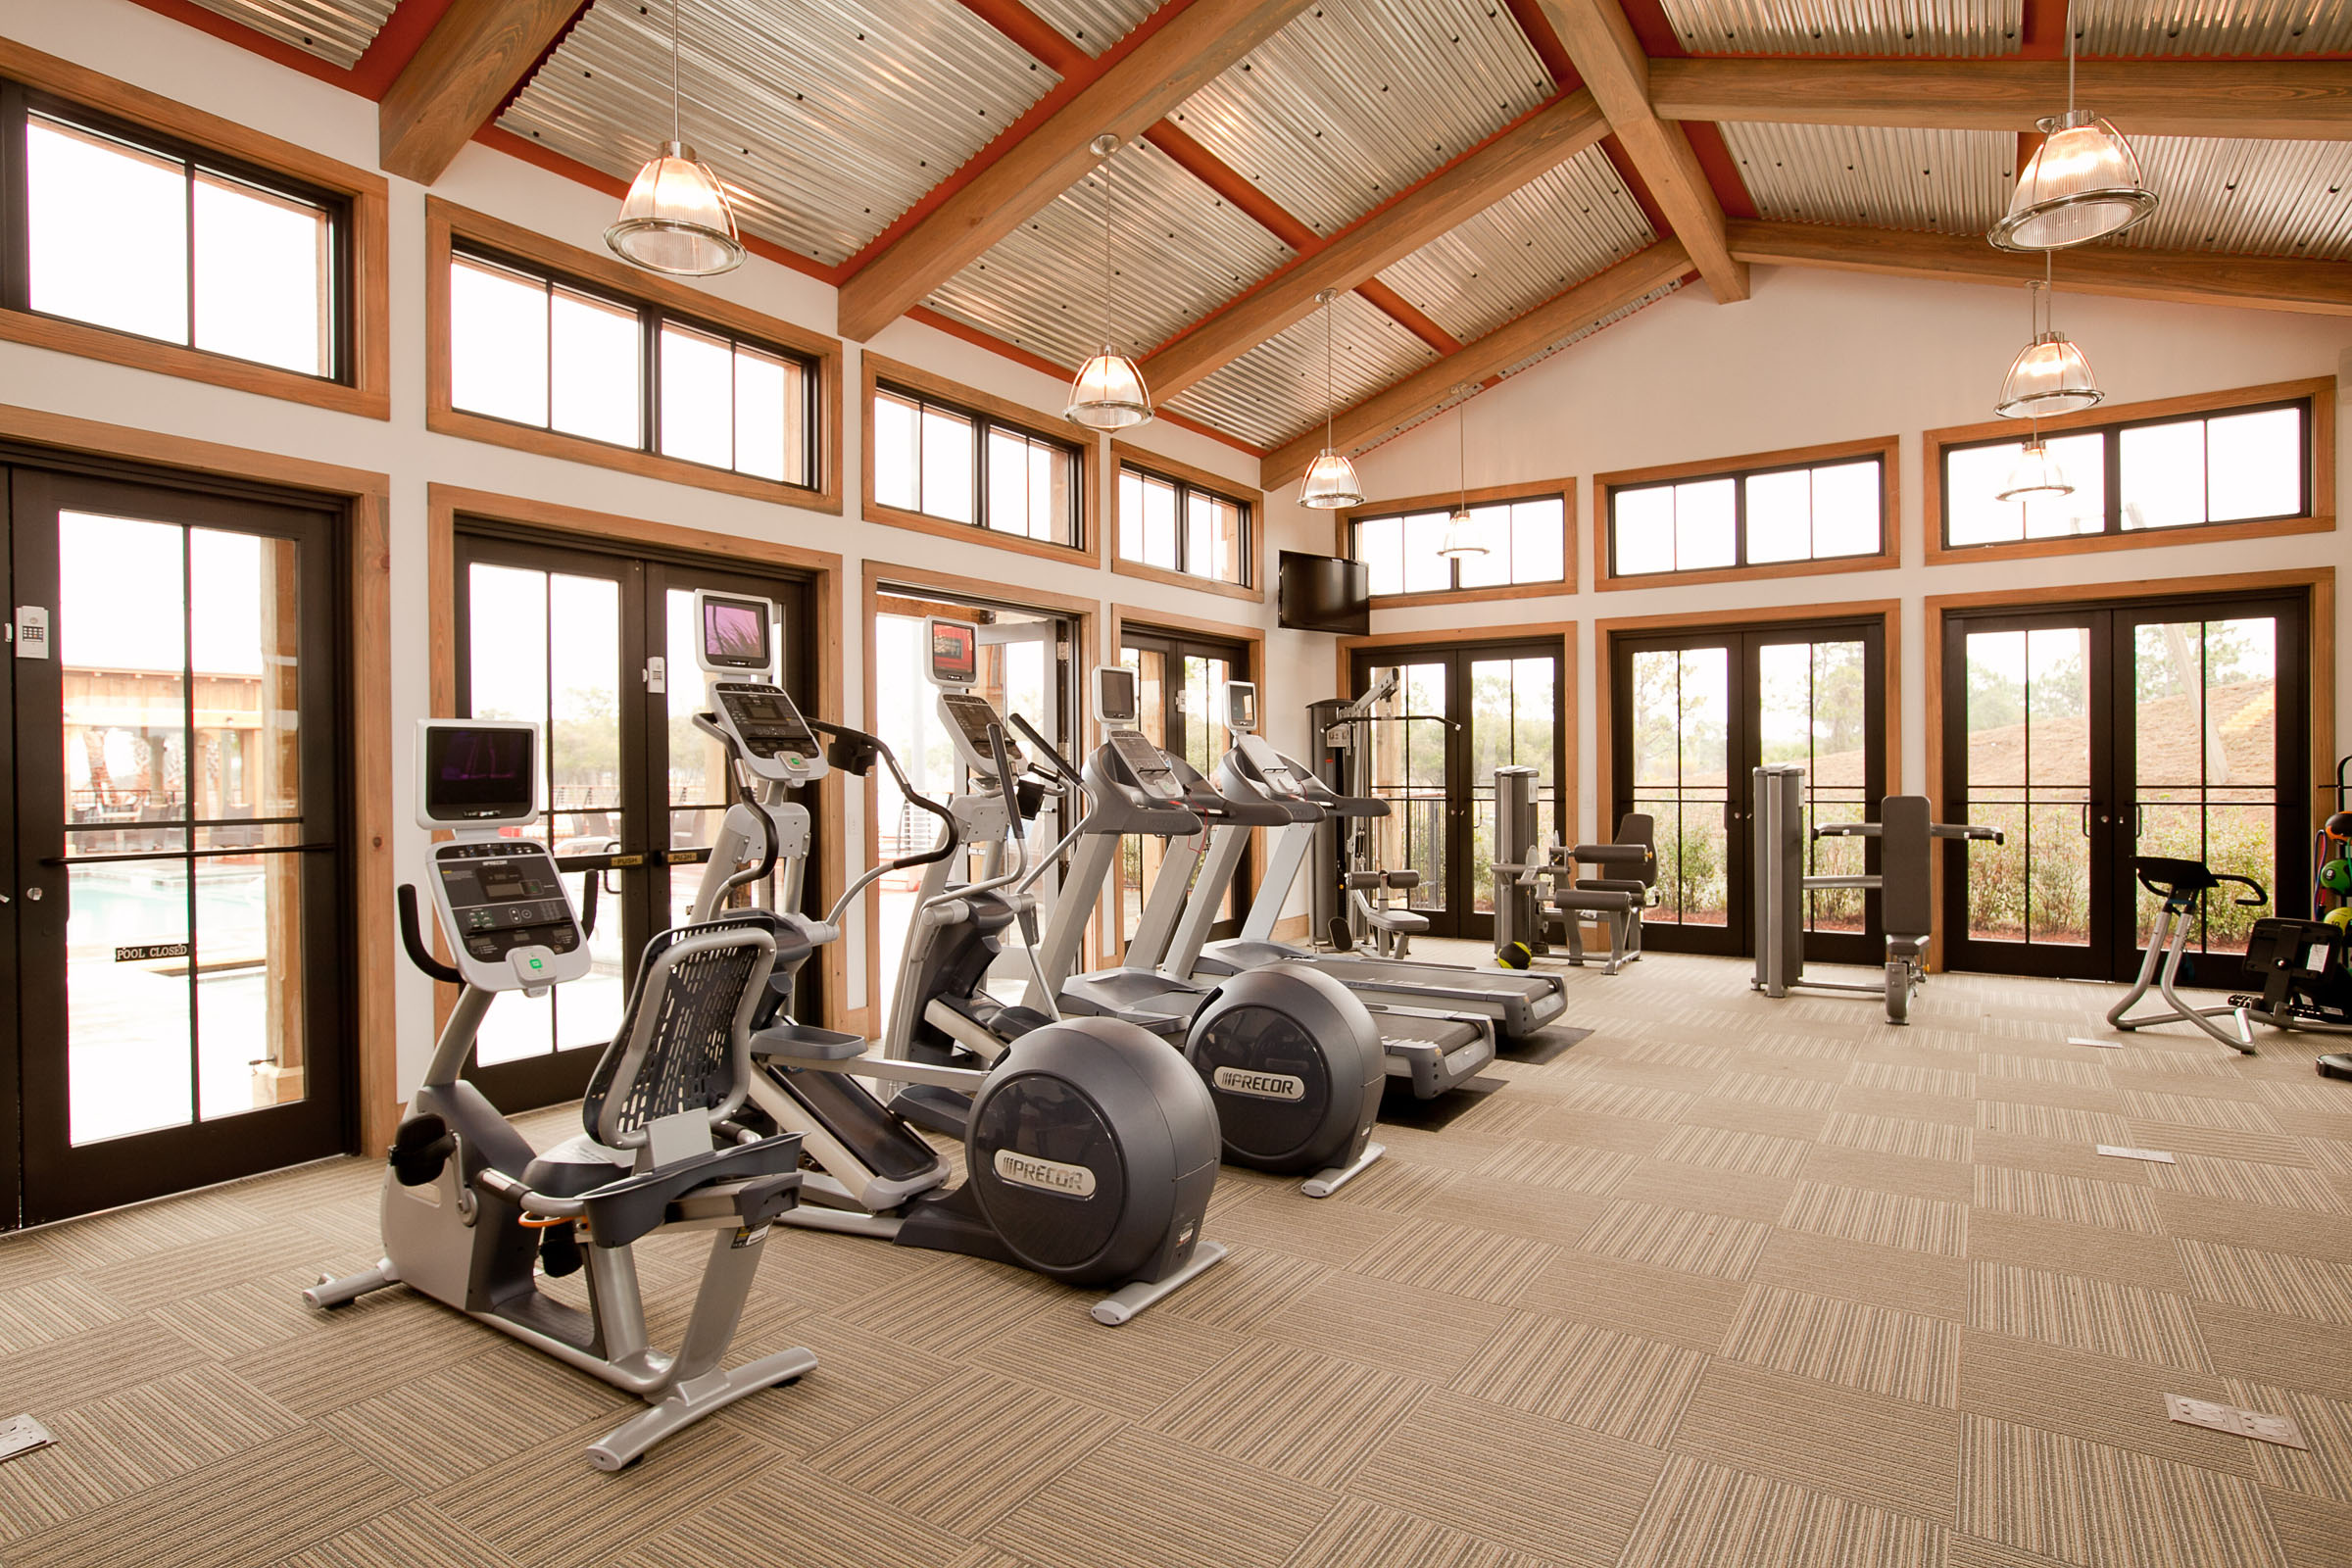 Pine Creek Sporting Club Fitness Center